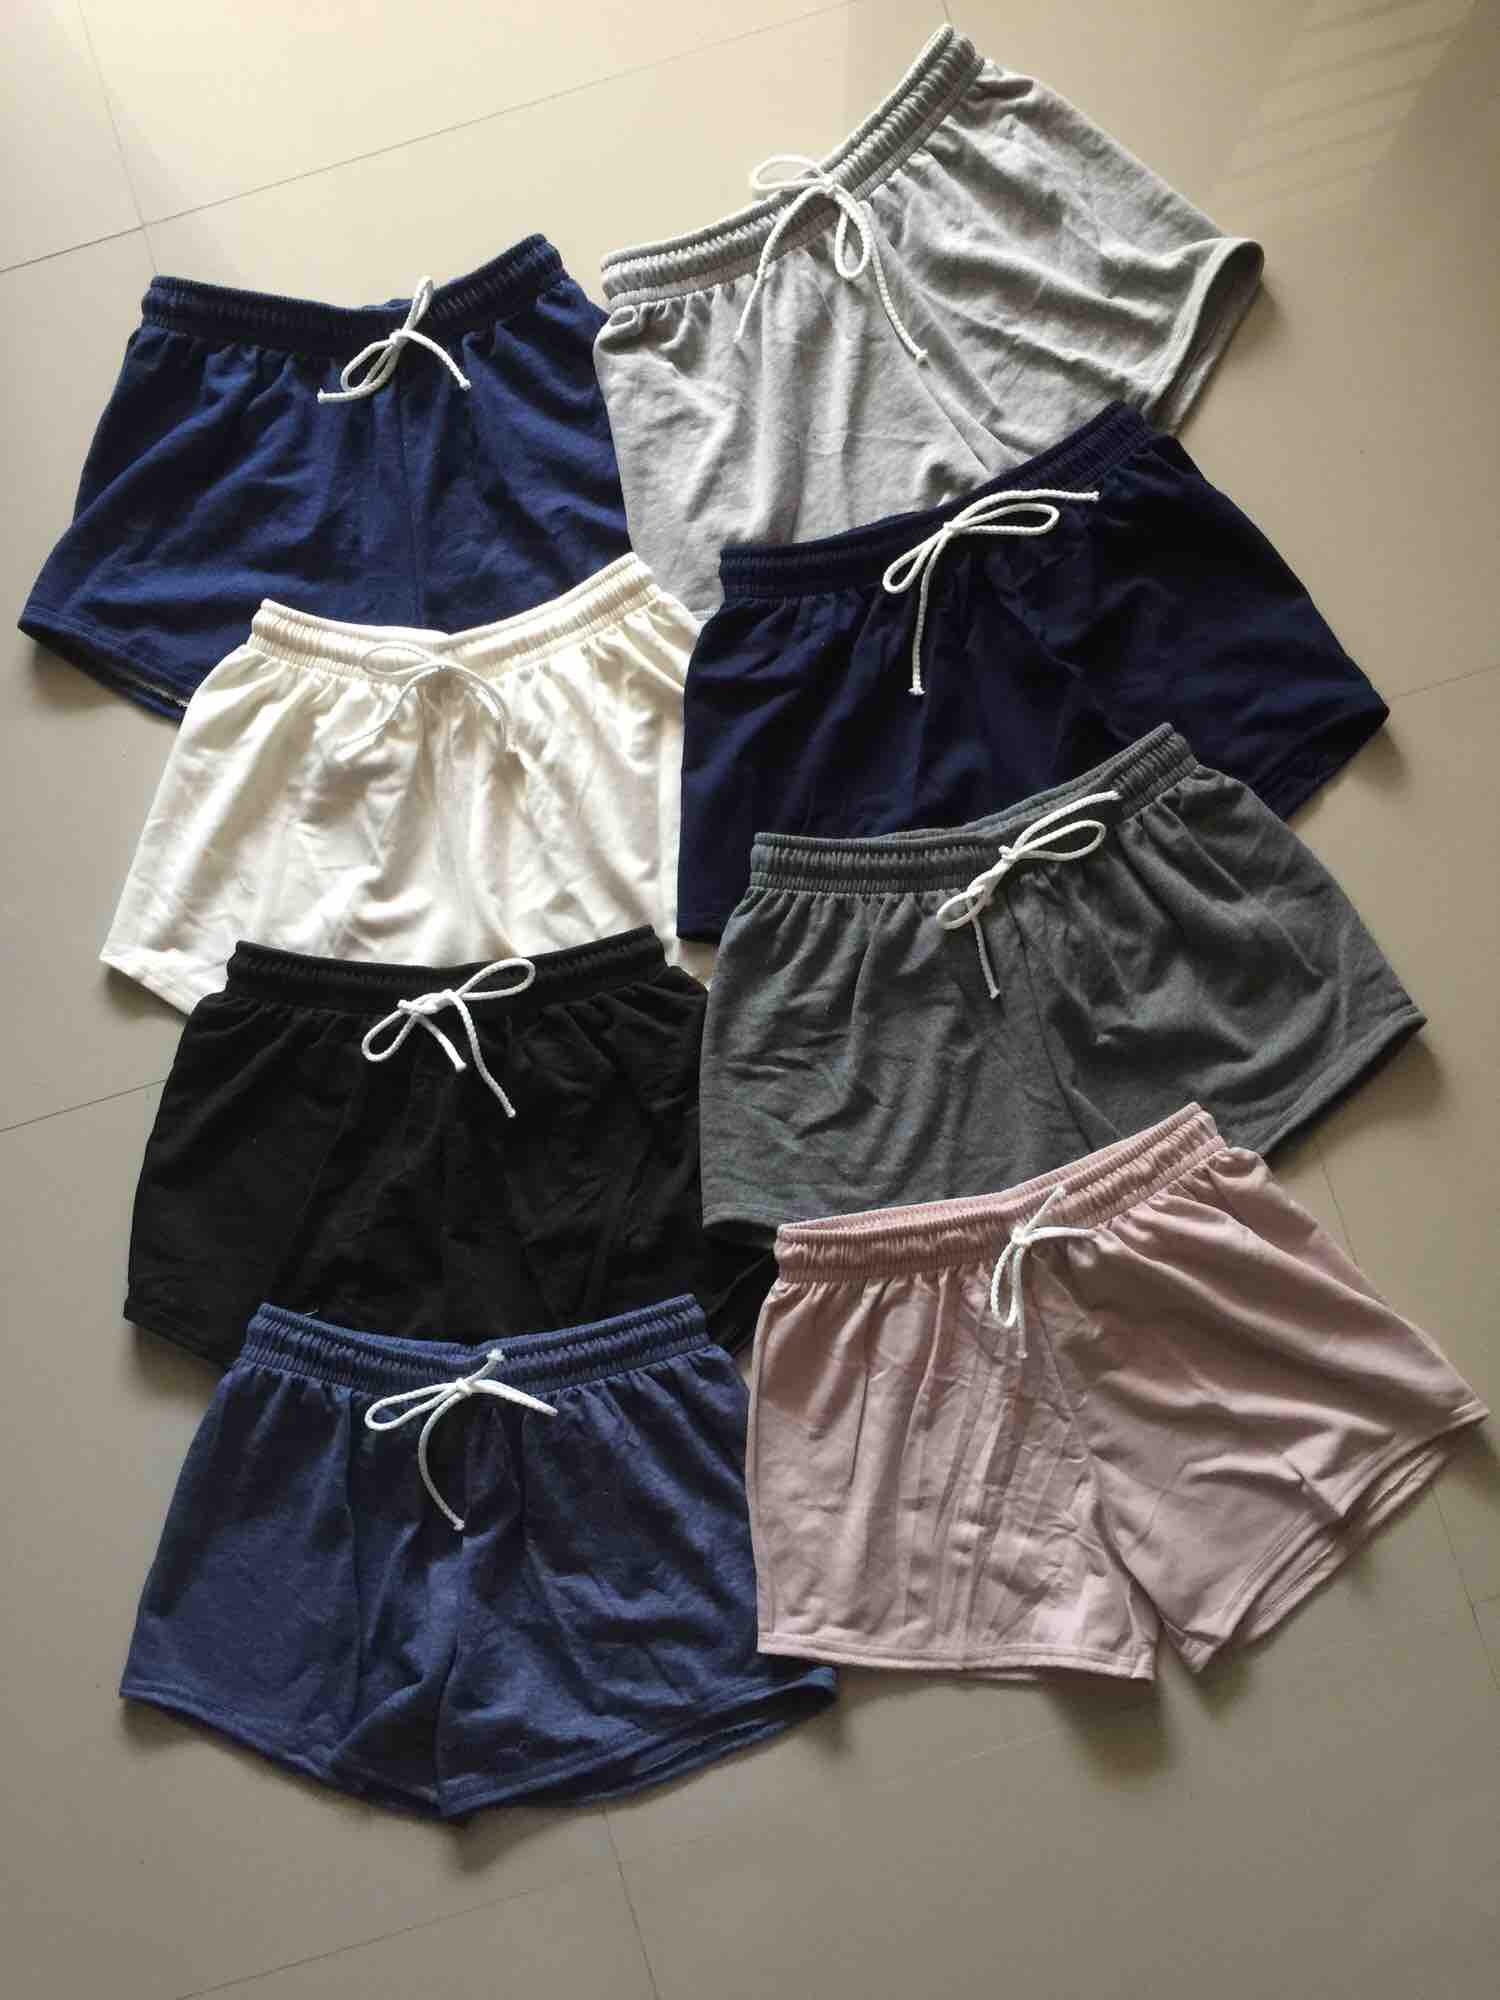 d05b16335ccc Jogger Shorts for Women/Basic Clothing (Sold per Piece) NO COLOR REQUEST  DURING